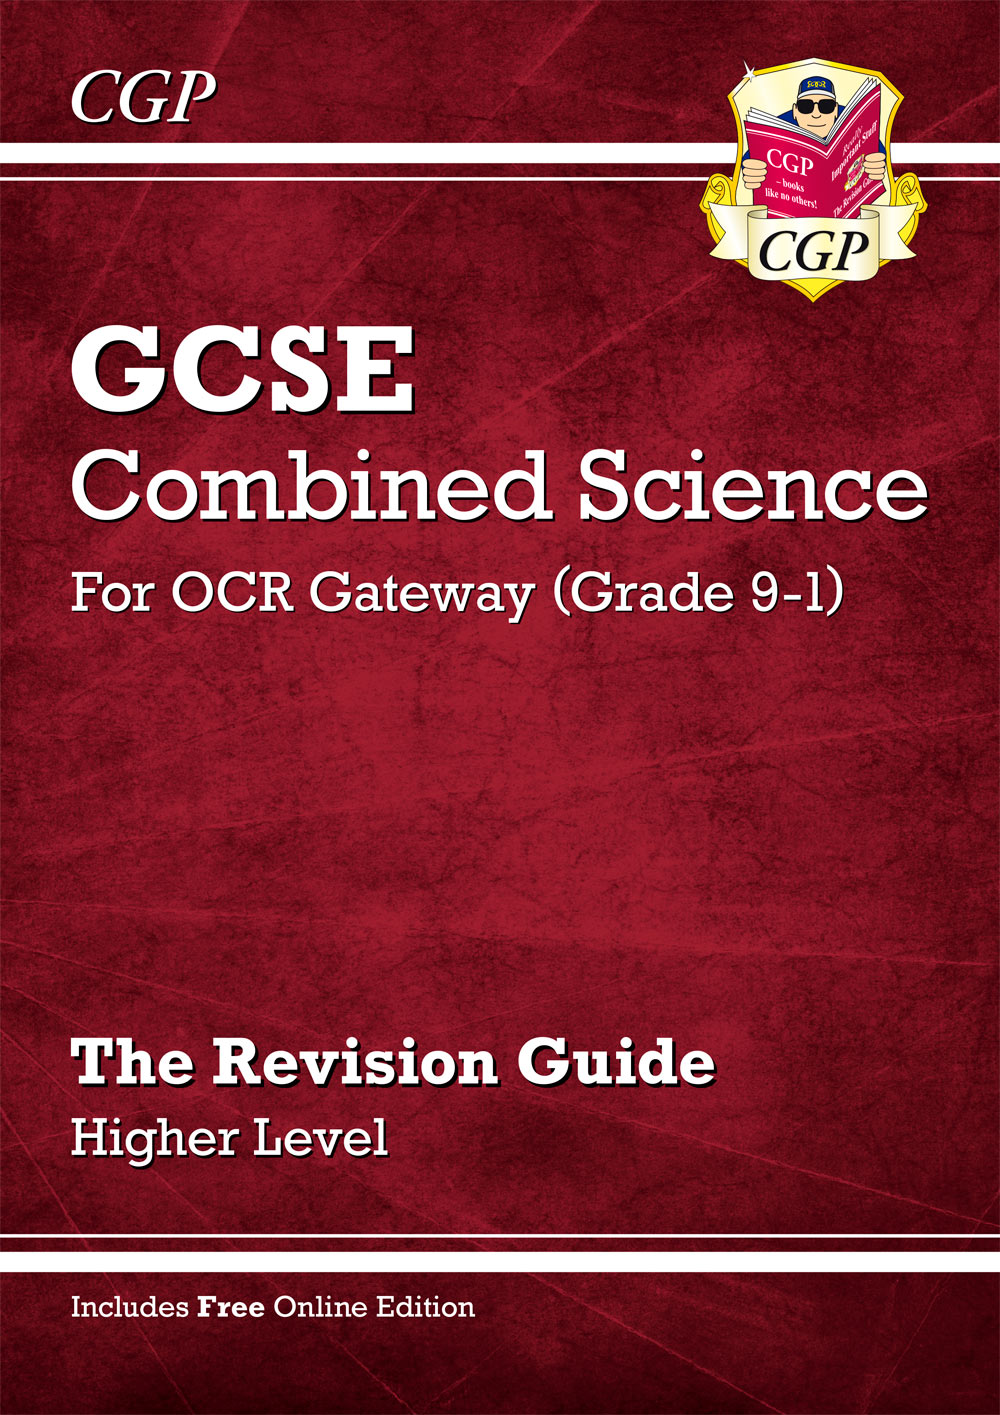 SRHR45 - Grade 9-1 GCSE Combined Science: OCR Gateway Revision Guide with Online Edition - Higher